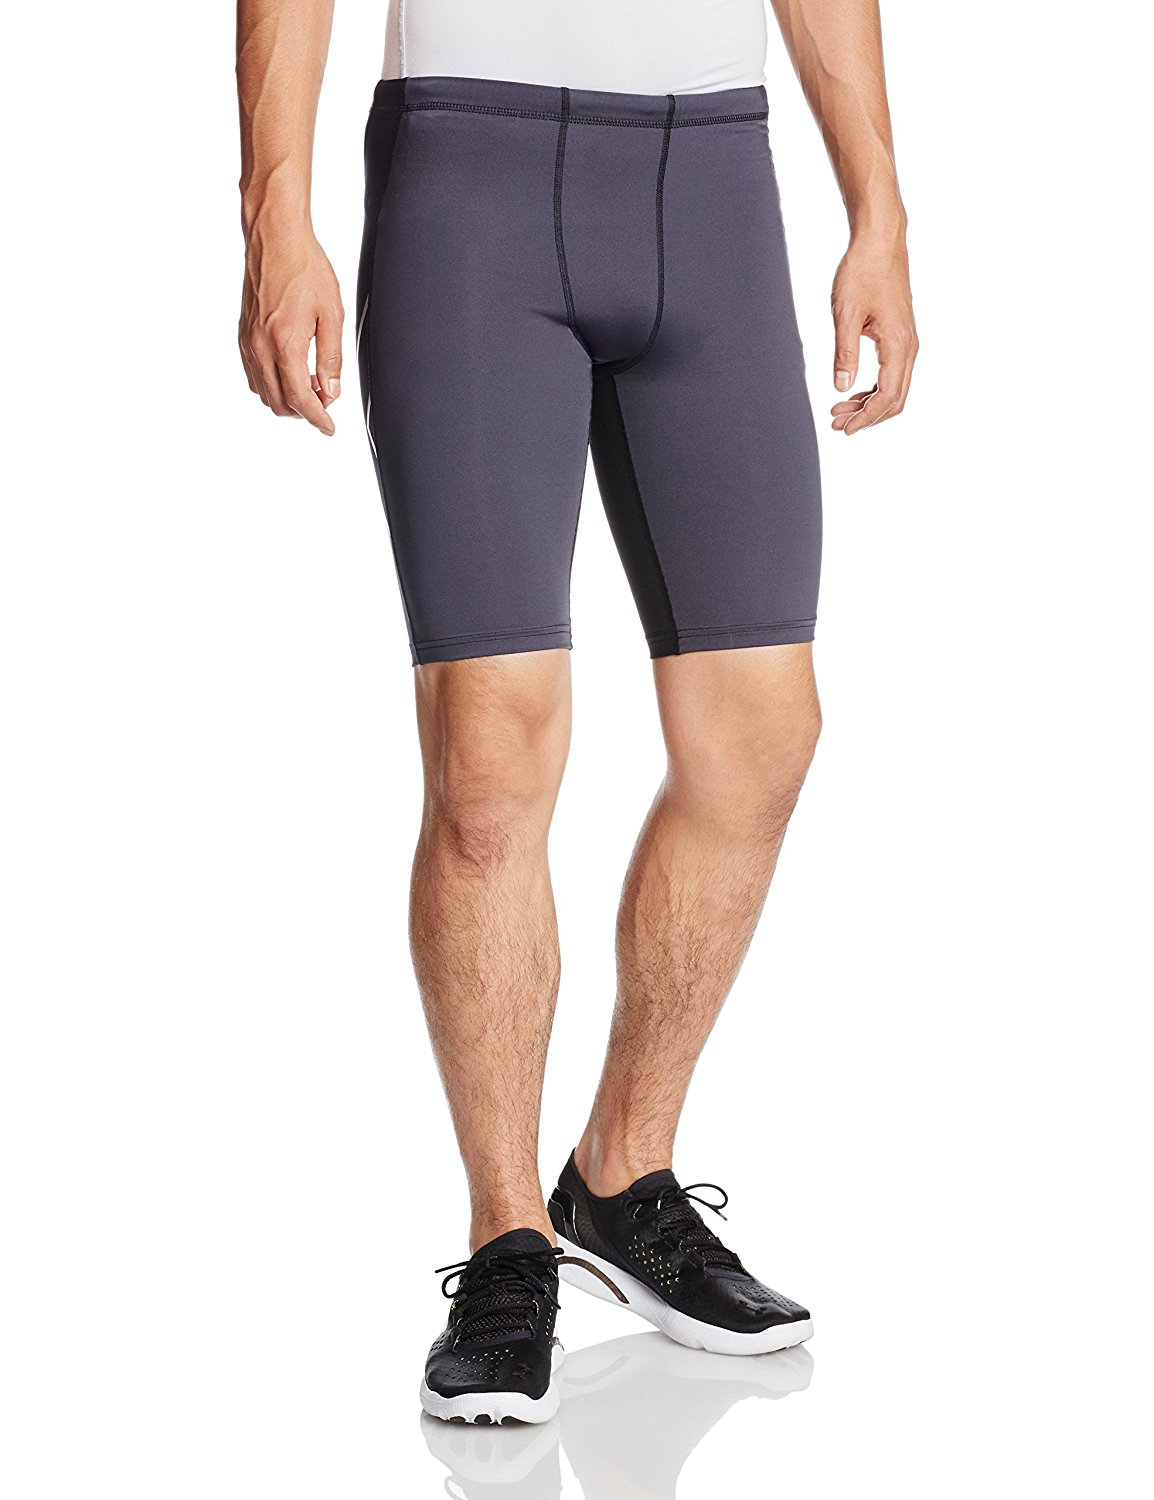 mens elite compression shorts image